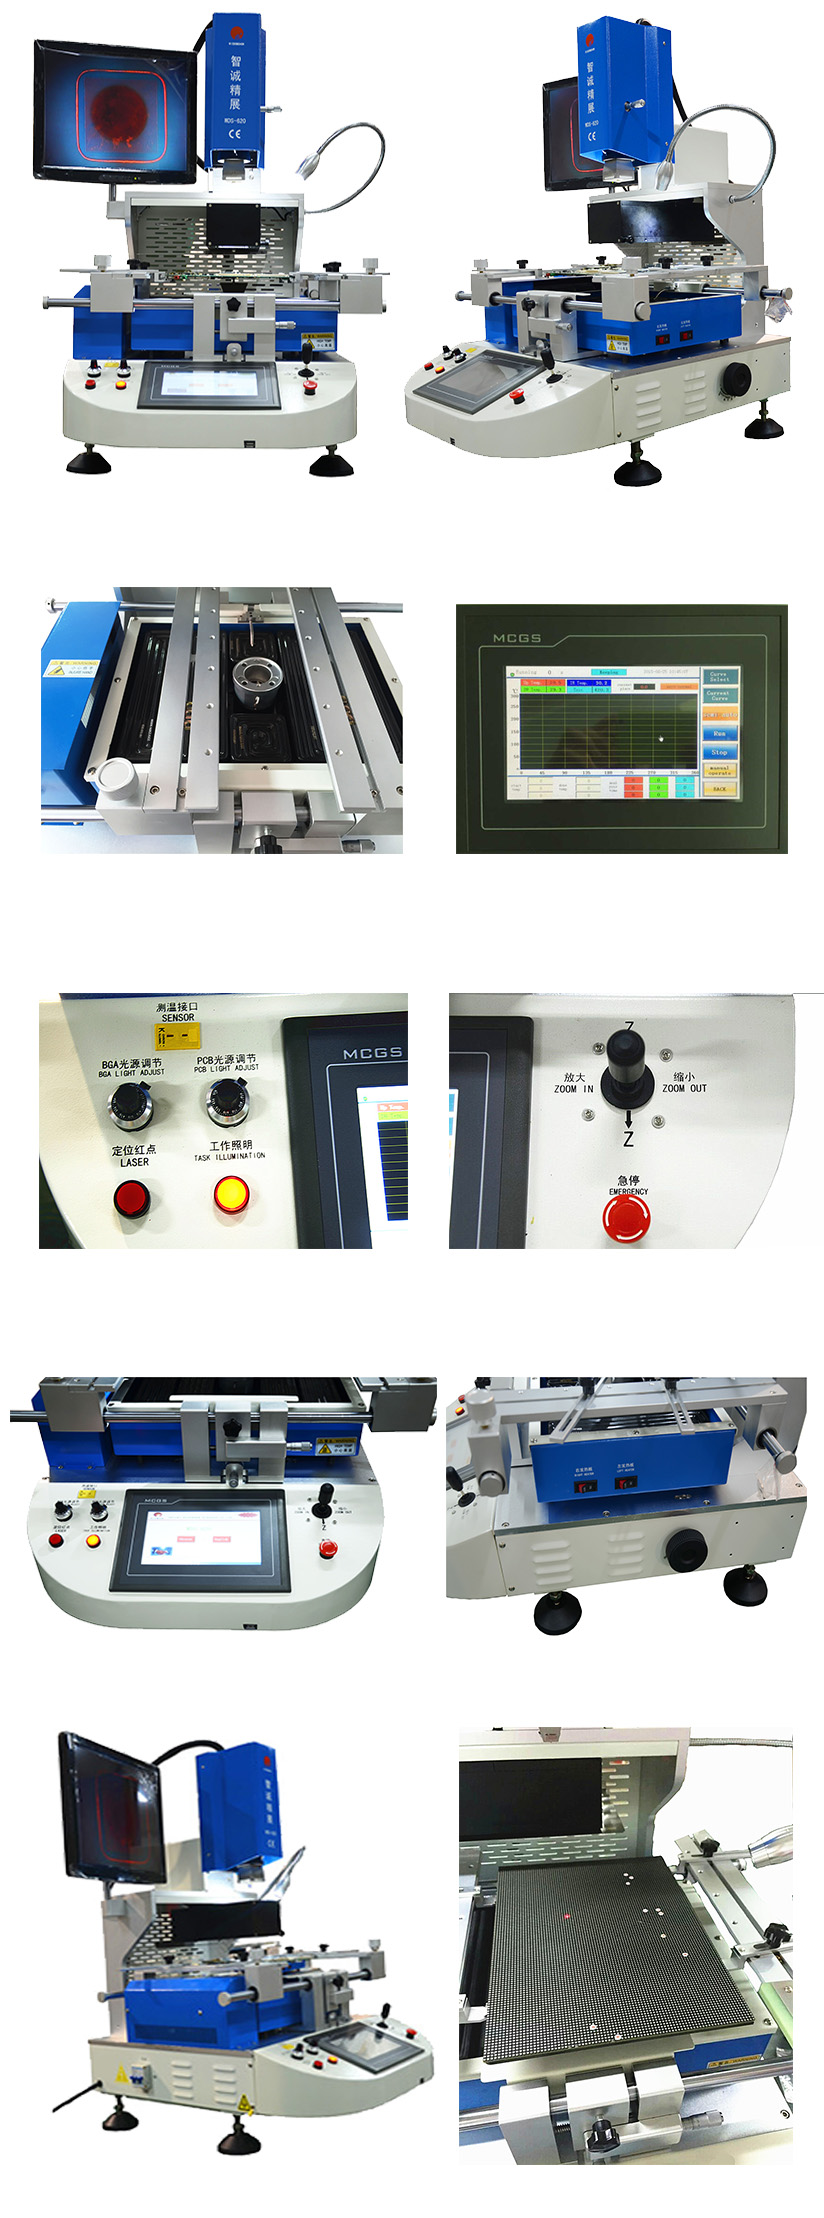 High Tech Wds 620 Ic Removal Tool Bga Chip Level Repair Machine For Soldering Kit 12 Different Tools Circuit Board Chipset Replace Laser Rework Station Iphone Repairing